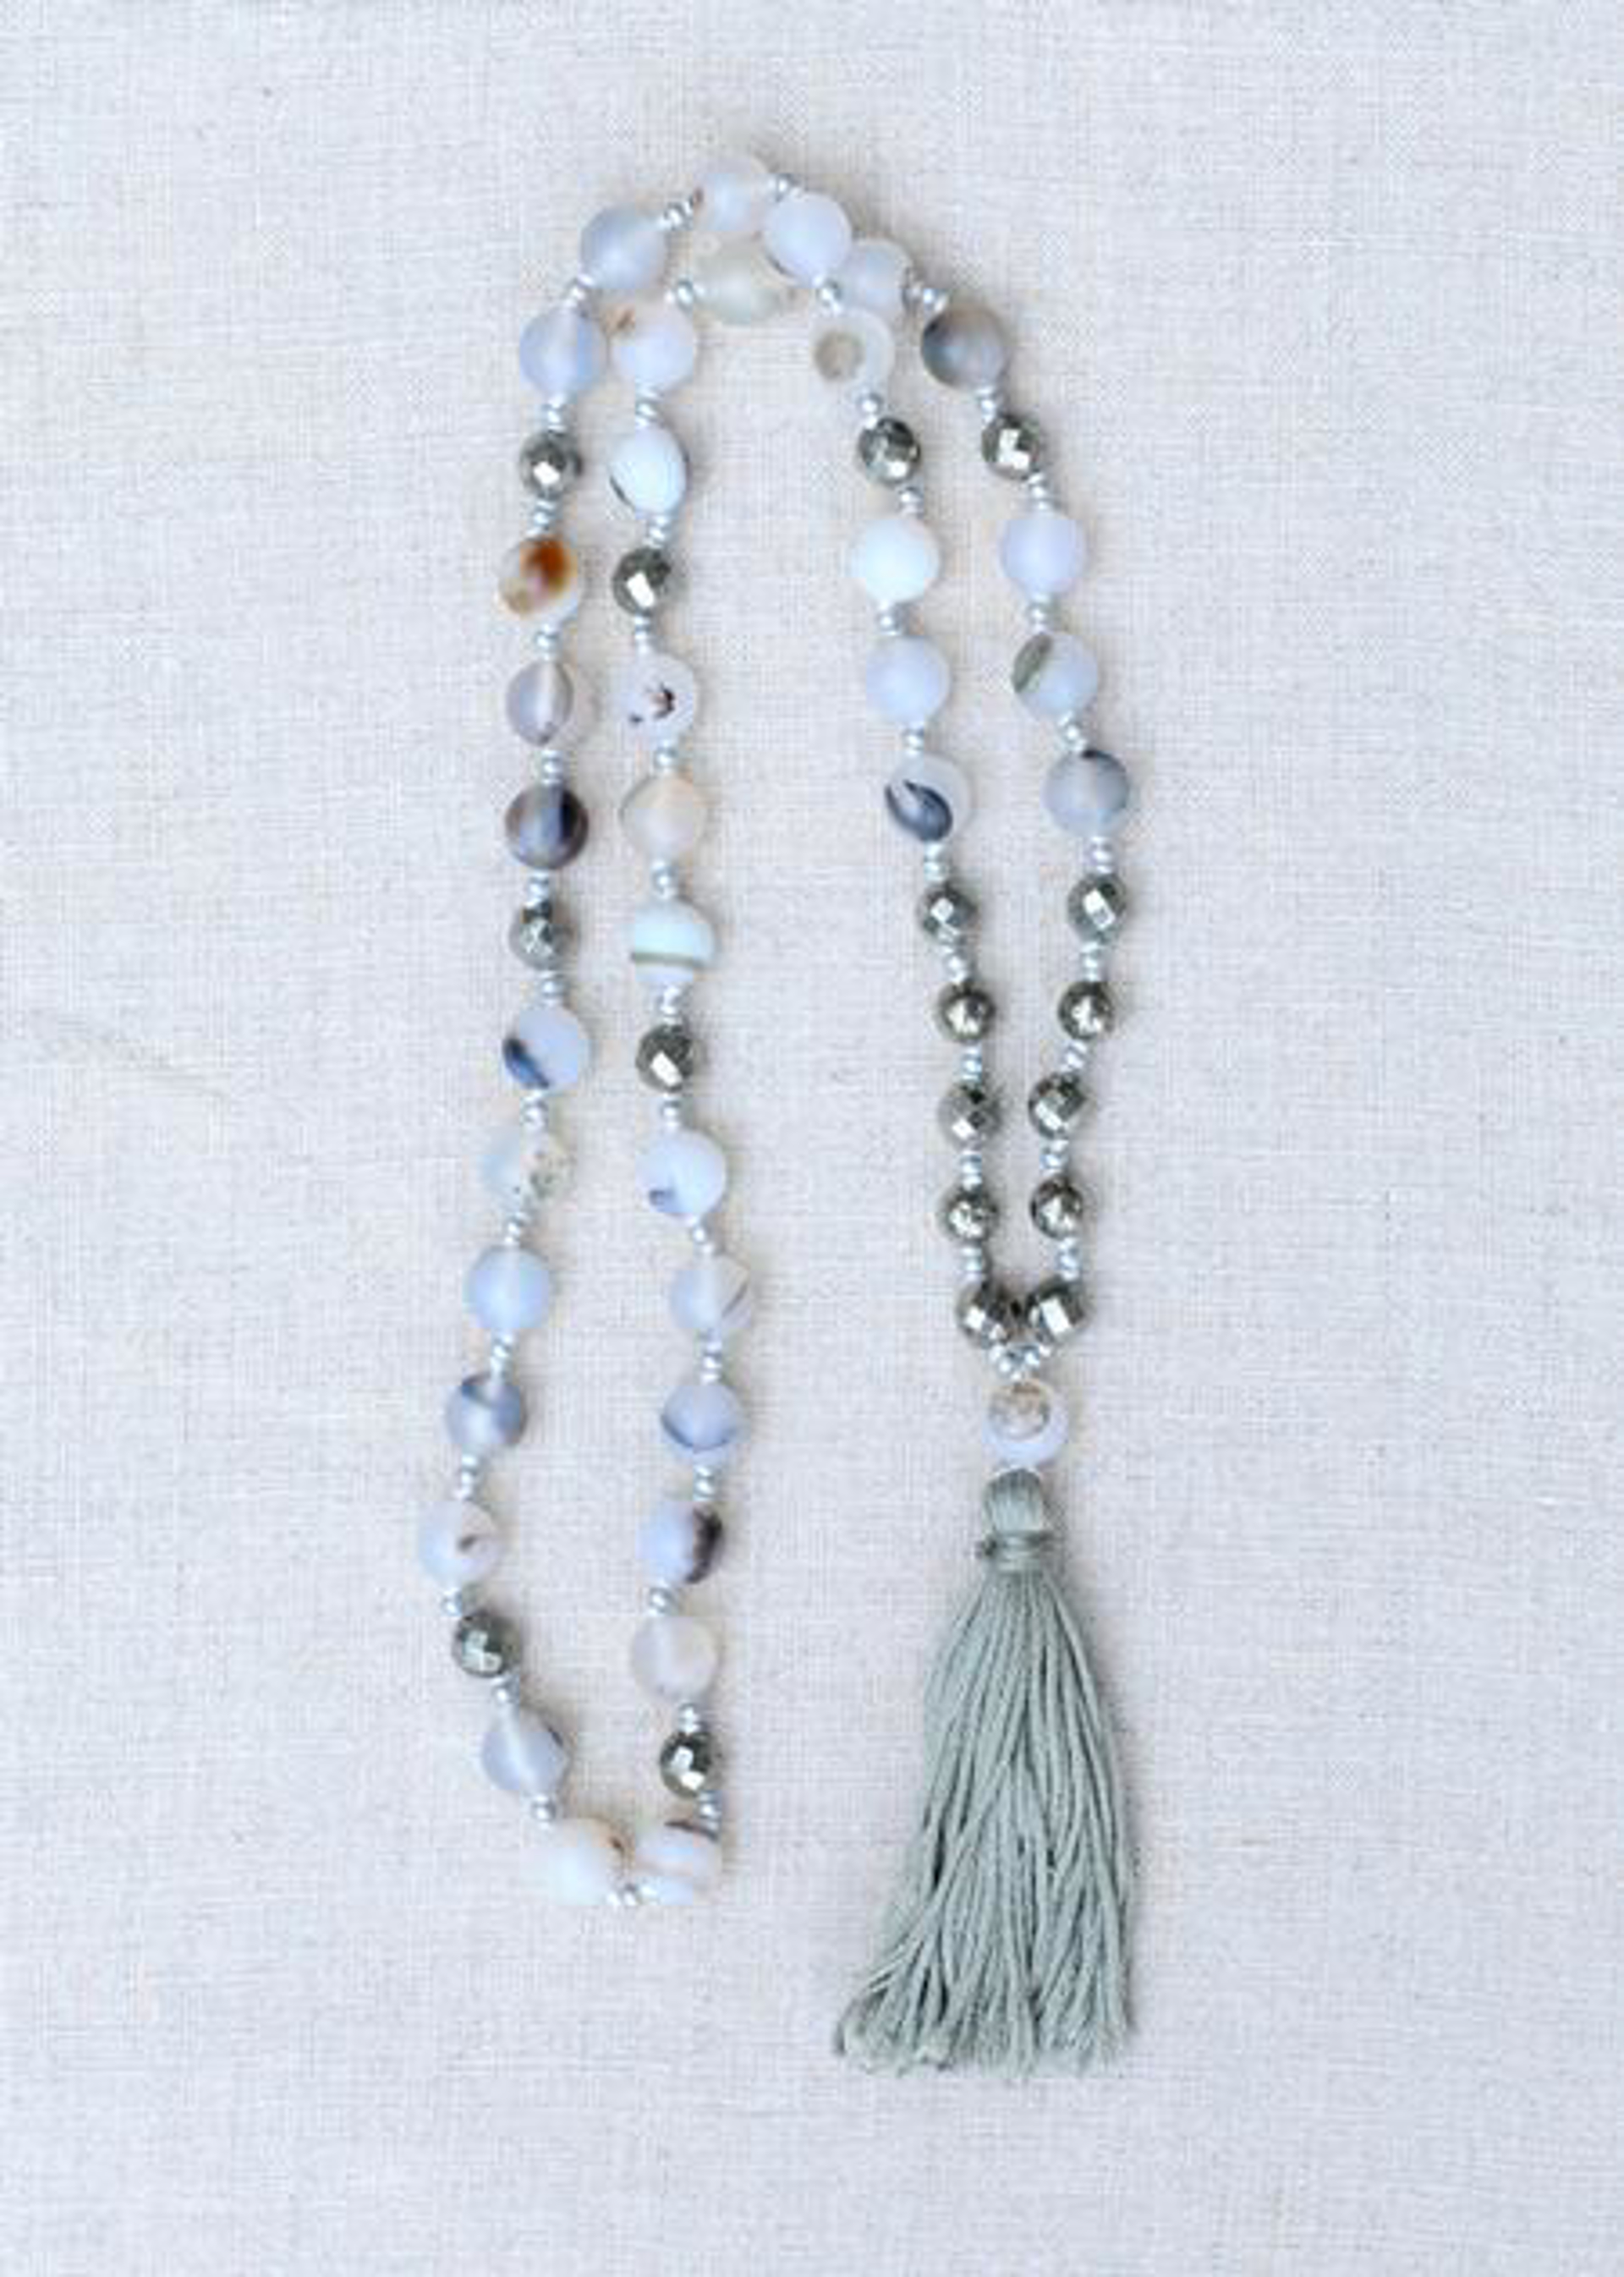 Montana Agate & Pyrite Tassel Necklace by Sam Taylor